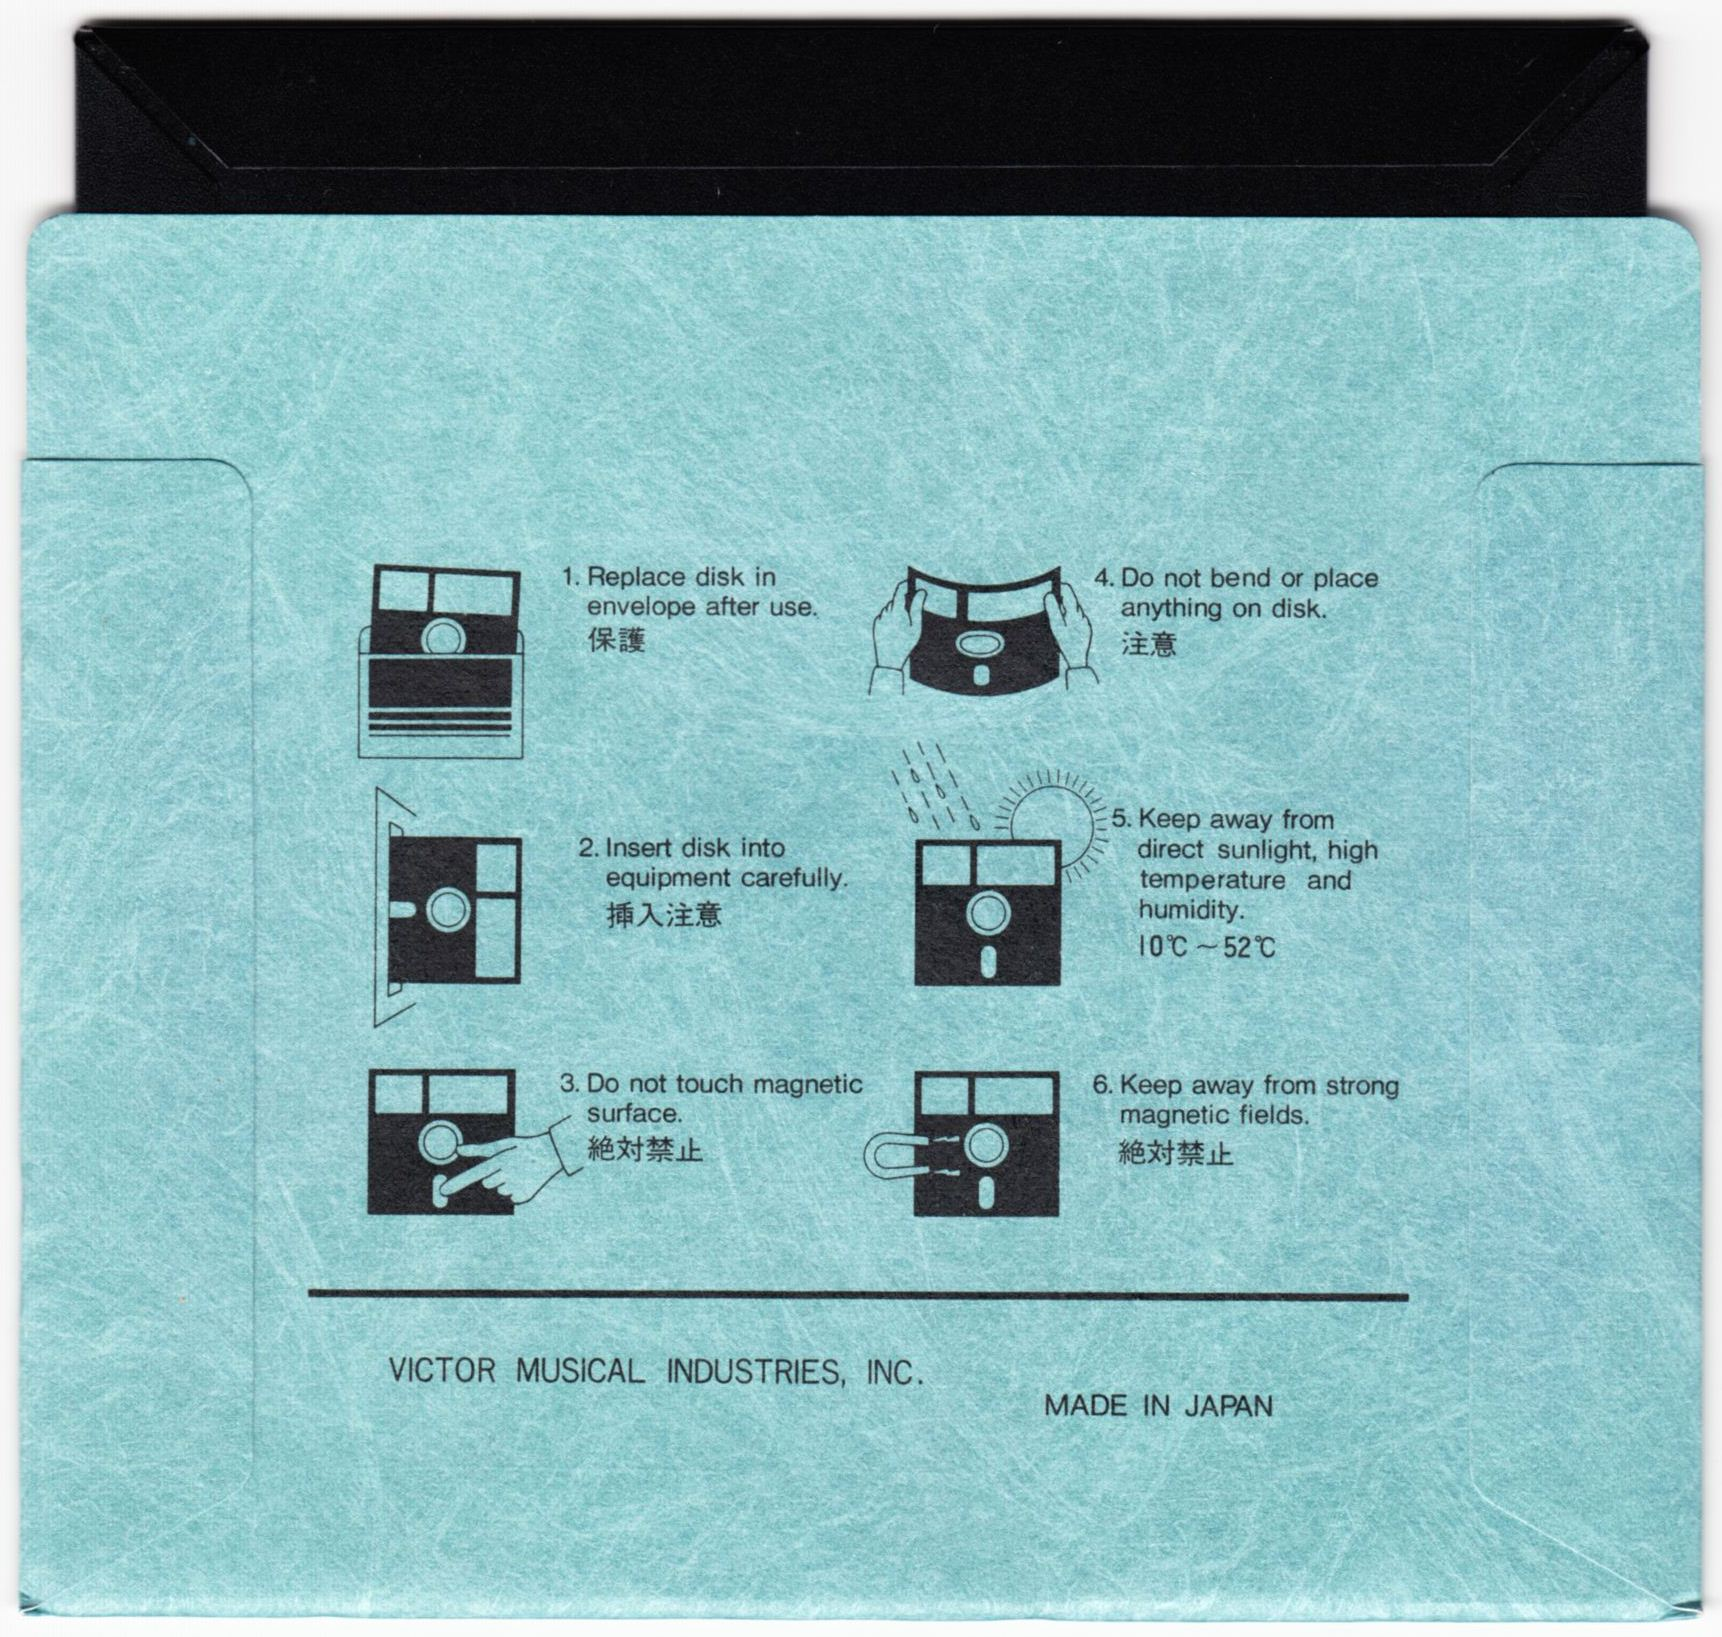 Game - Chaos Strikes Back - JP - PC-9801 - 5.25-inch - Save Disk In Sleeve - Back - Scan